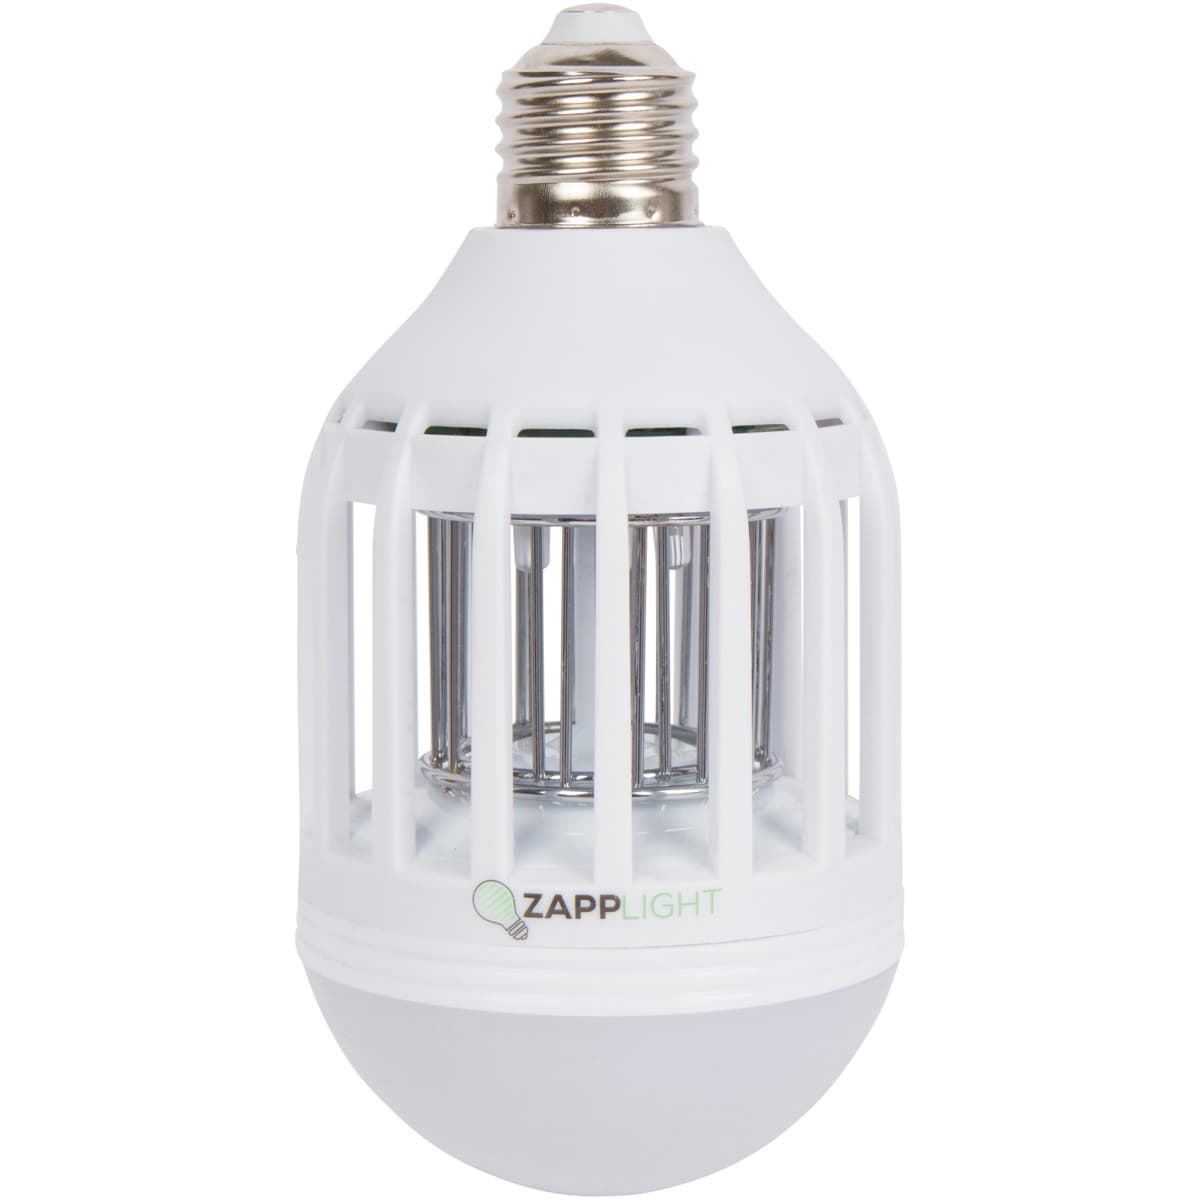 Zapplight 2in1 Led Bulb Bulbs Zapper Mosquito Bug Killer